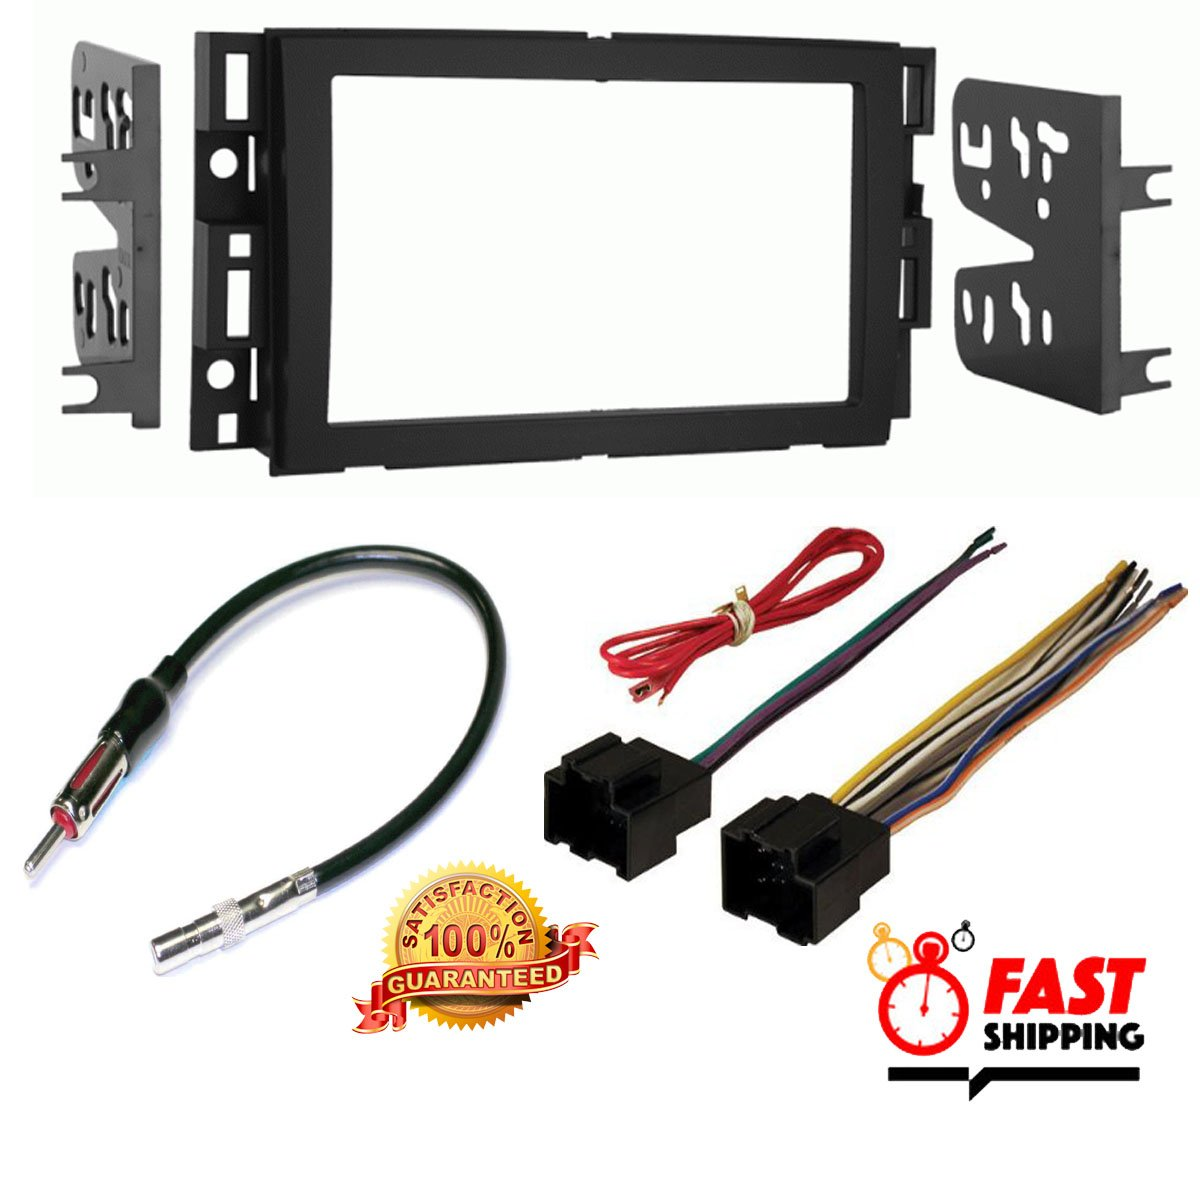 Pontiac 2005 2009 G6 Car Stereo Radio Cd Player Wiring Connector Receiver Install Mounting Kit Antenna Electronics